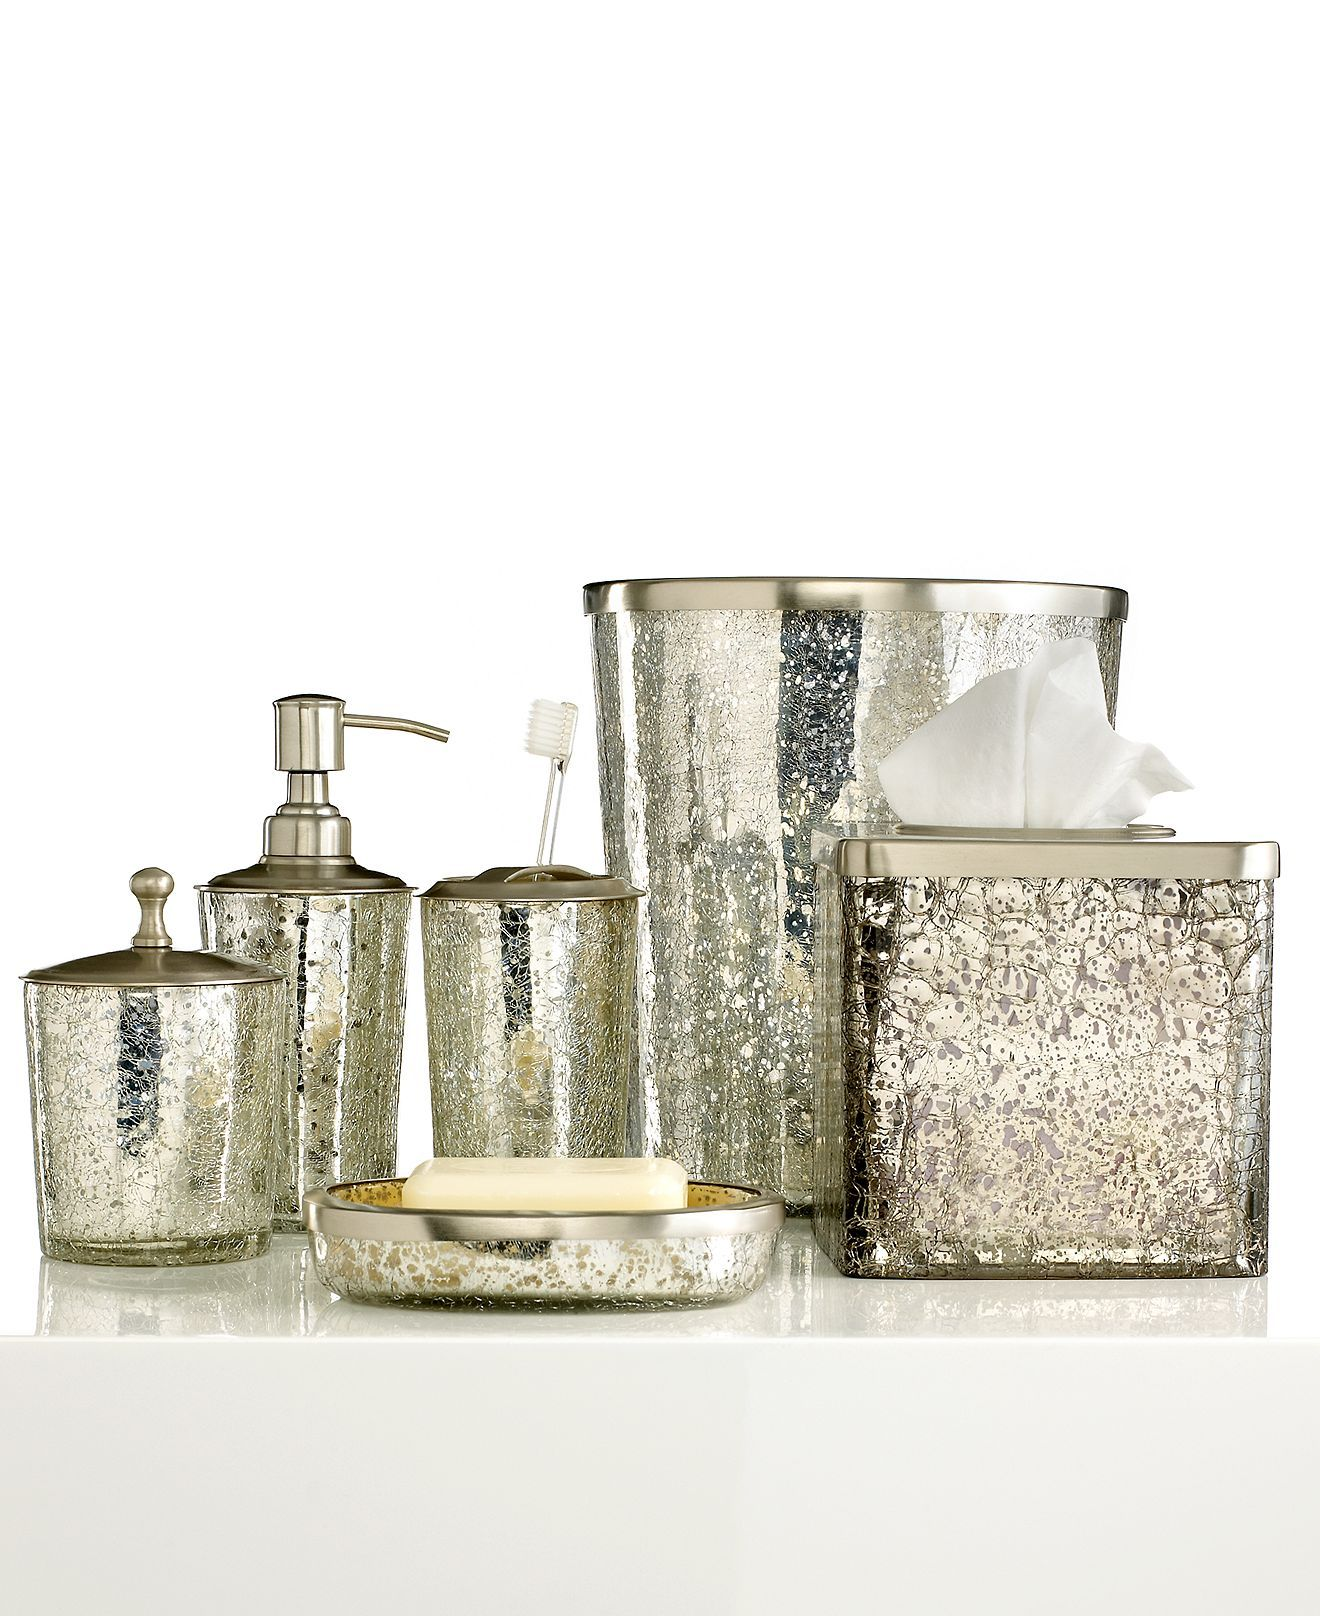 Bath Accessories, Crackle Glass Ice Trash Can | bathrooms ...